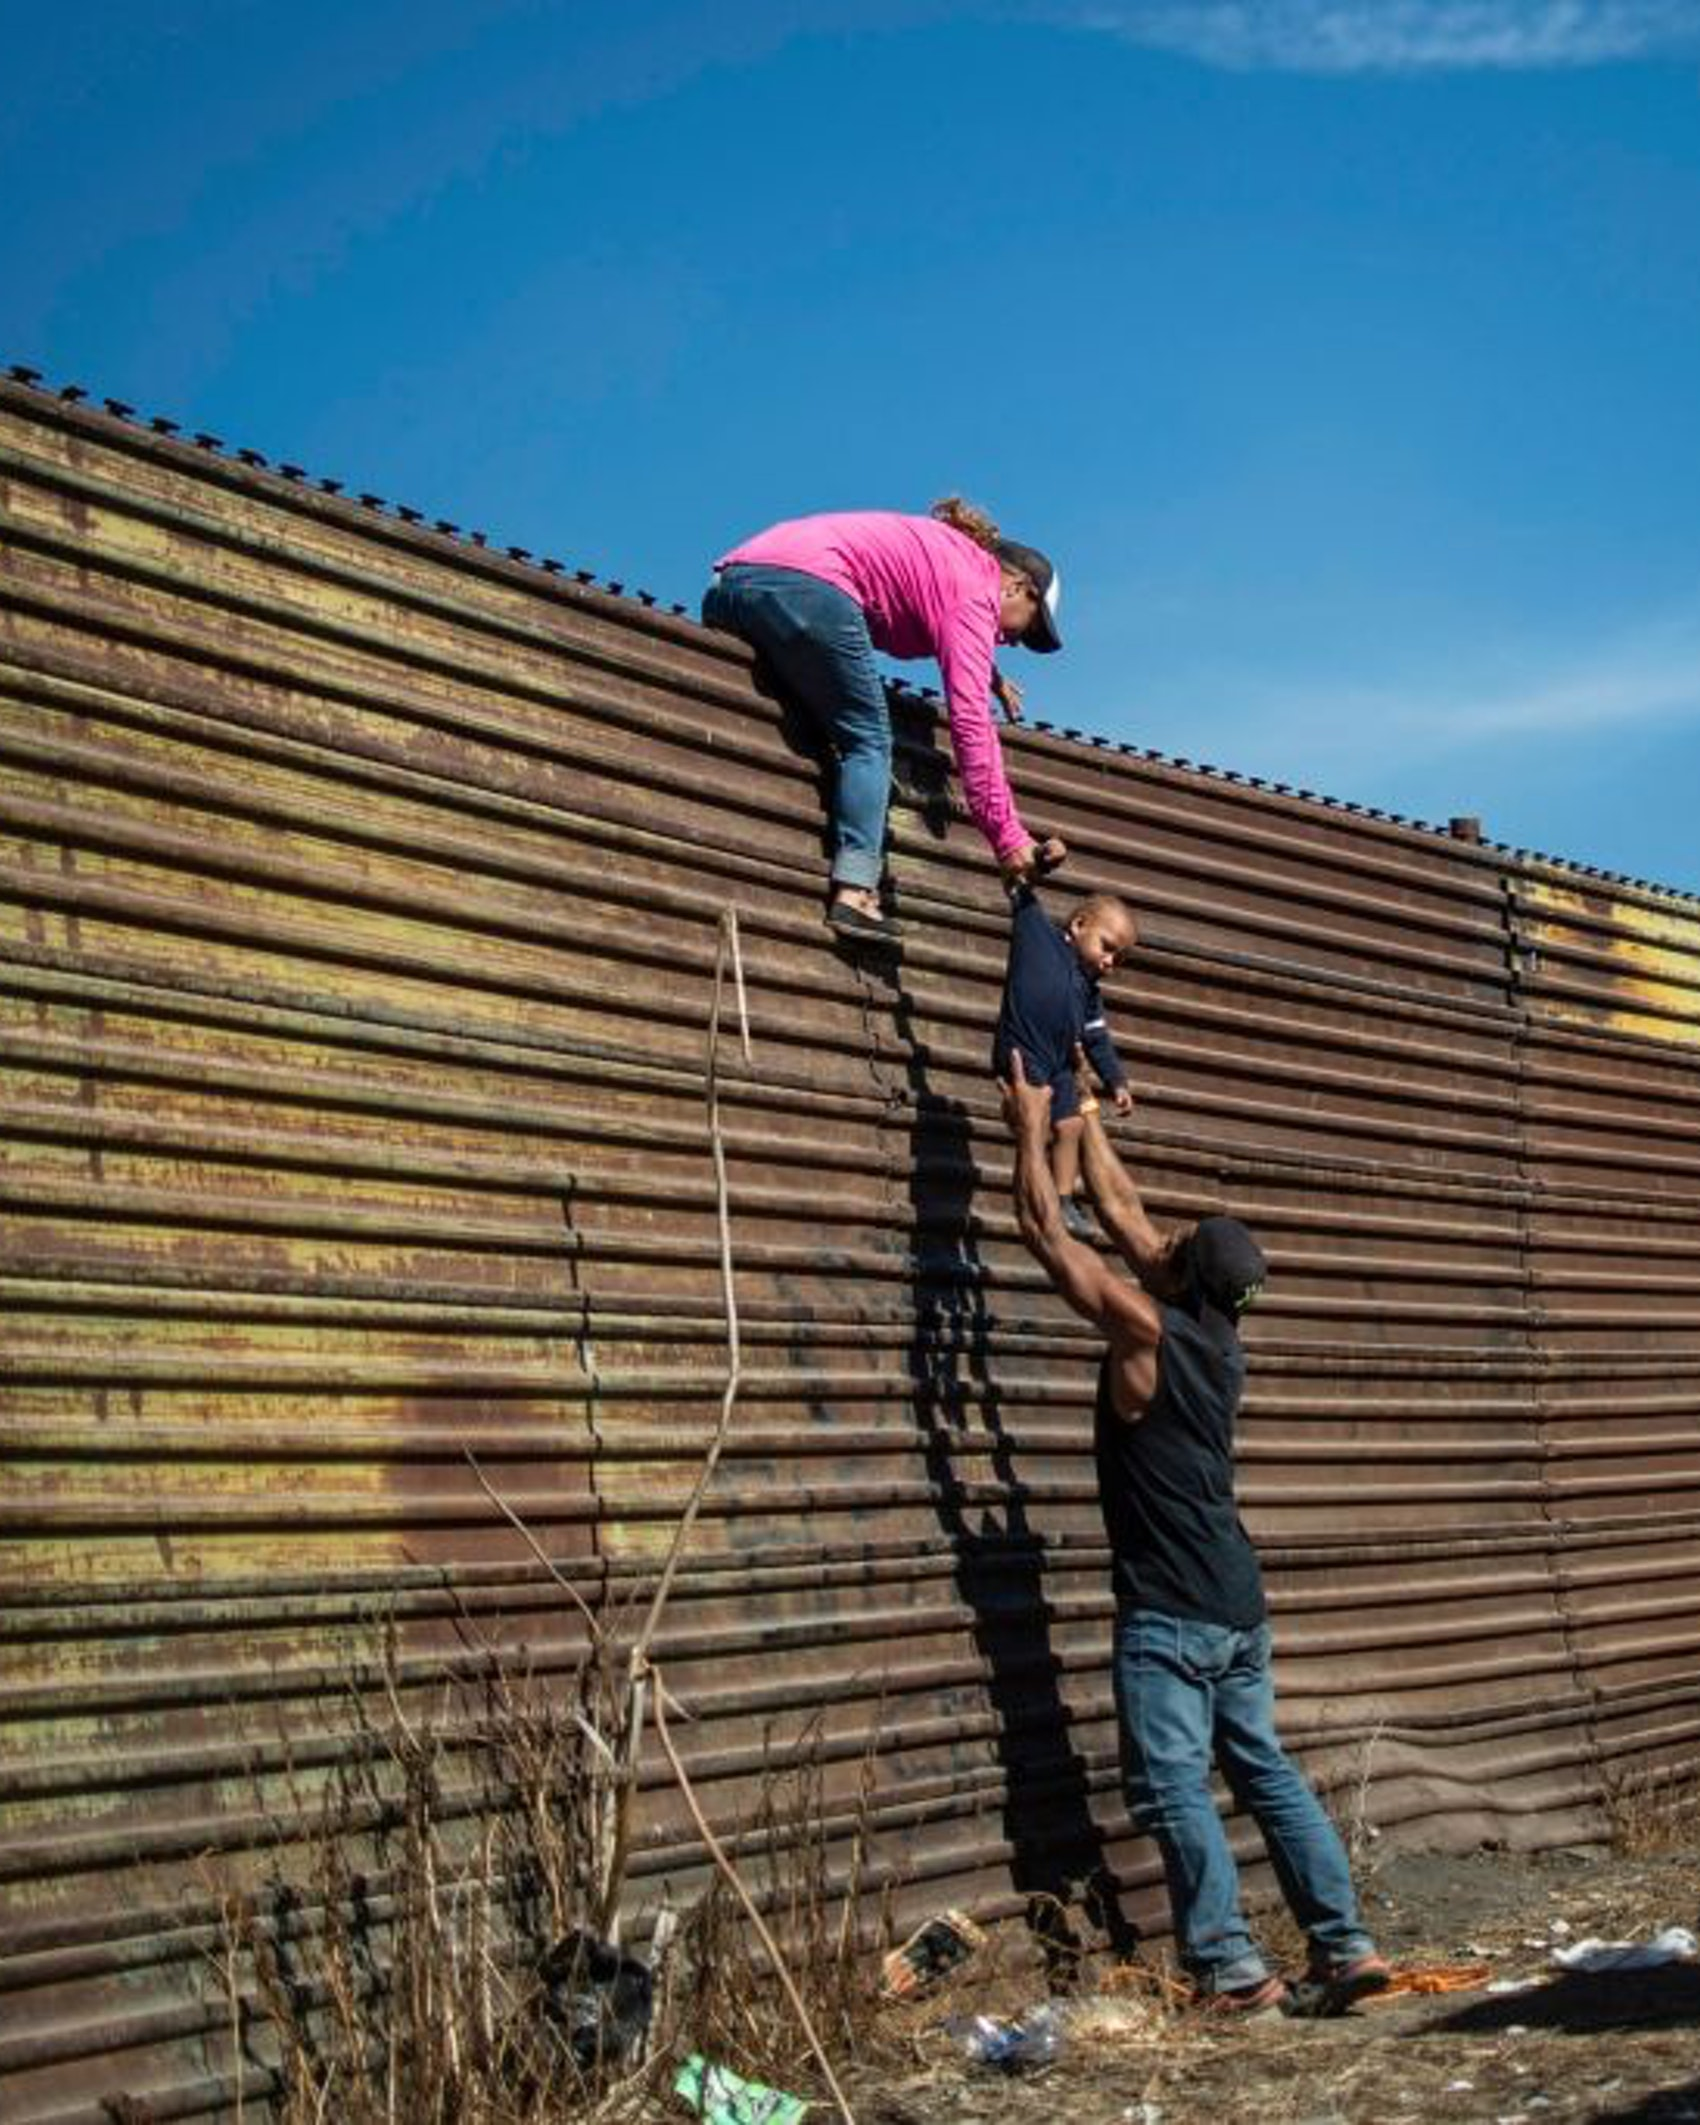 TOPSHOT - A group of Central American migrants climb the border fence between Mexico and the United States, near El Chaparral border crossing, in Tijuana, Baja California State, Mexico, on November 25, 2018. - Hundreds of migrants attempted to storm a border fence separating Mexico from the US on Sunday amid mounting fears they will be kept in Mexico while their applications for a asylum are processed. An AFP photographer said the migrants broke away from a peaceful march at a border bridge and tried to climb over a metal border barrier in the attempt to enter the United States. (Photo by Pedro PARDO / AFP) (Photo by PEDRO PARDO/AFP via Getty Images)